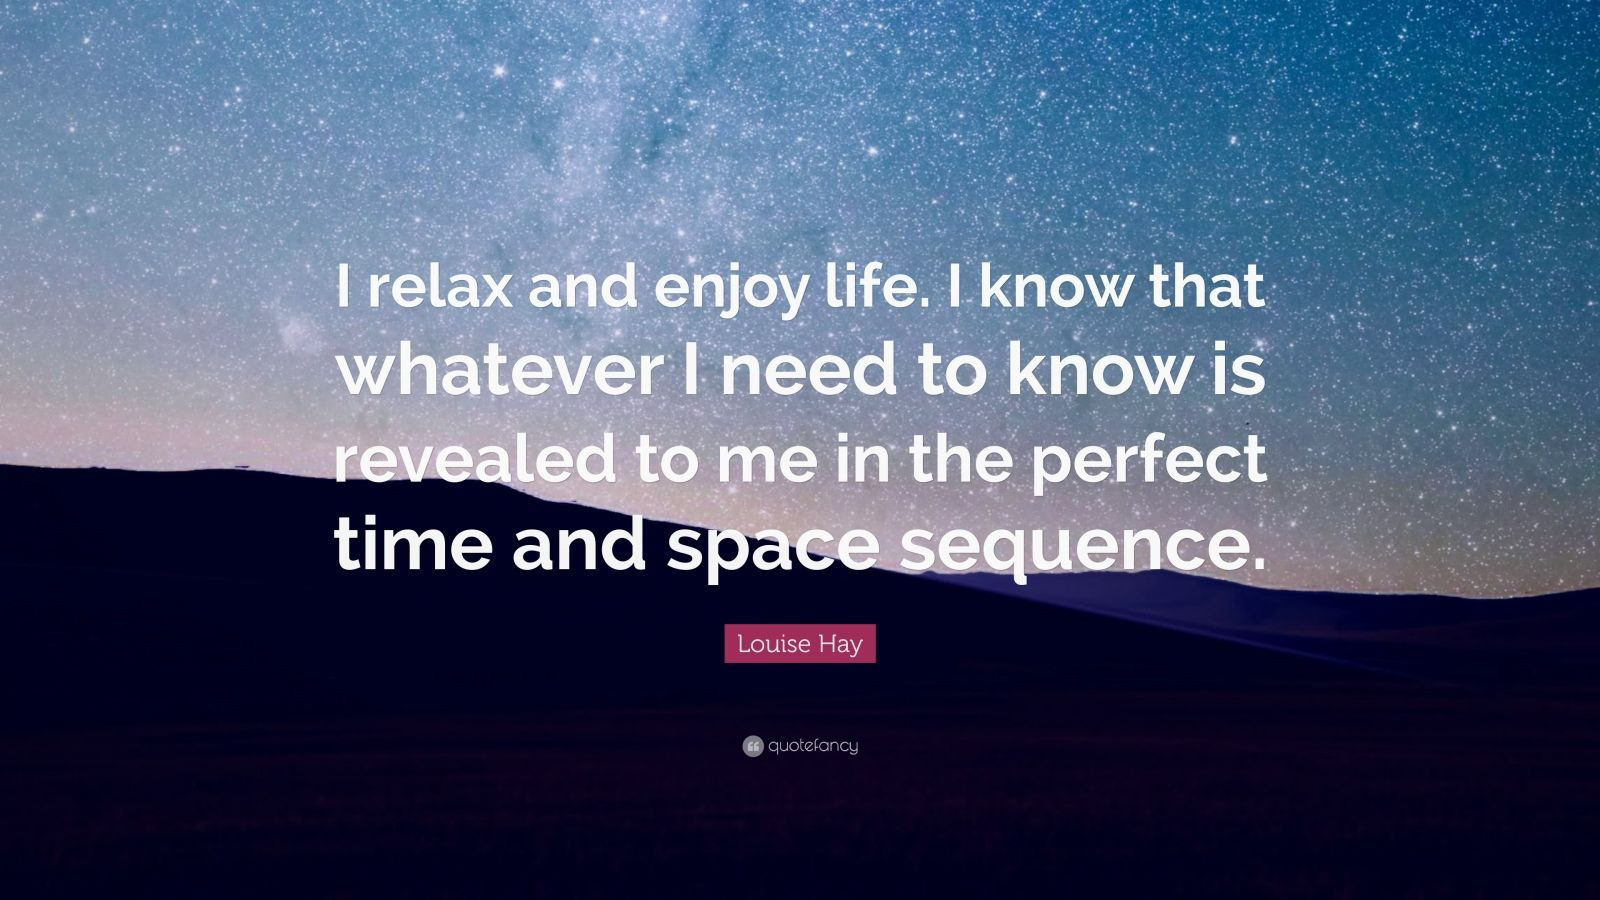 """Louise Hay Quote: """"I relax and enjoy life. I know that whatever I need to know is revealed to me in the perfect time and space sequence."""""""